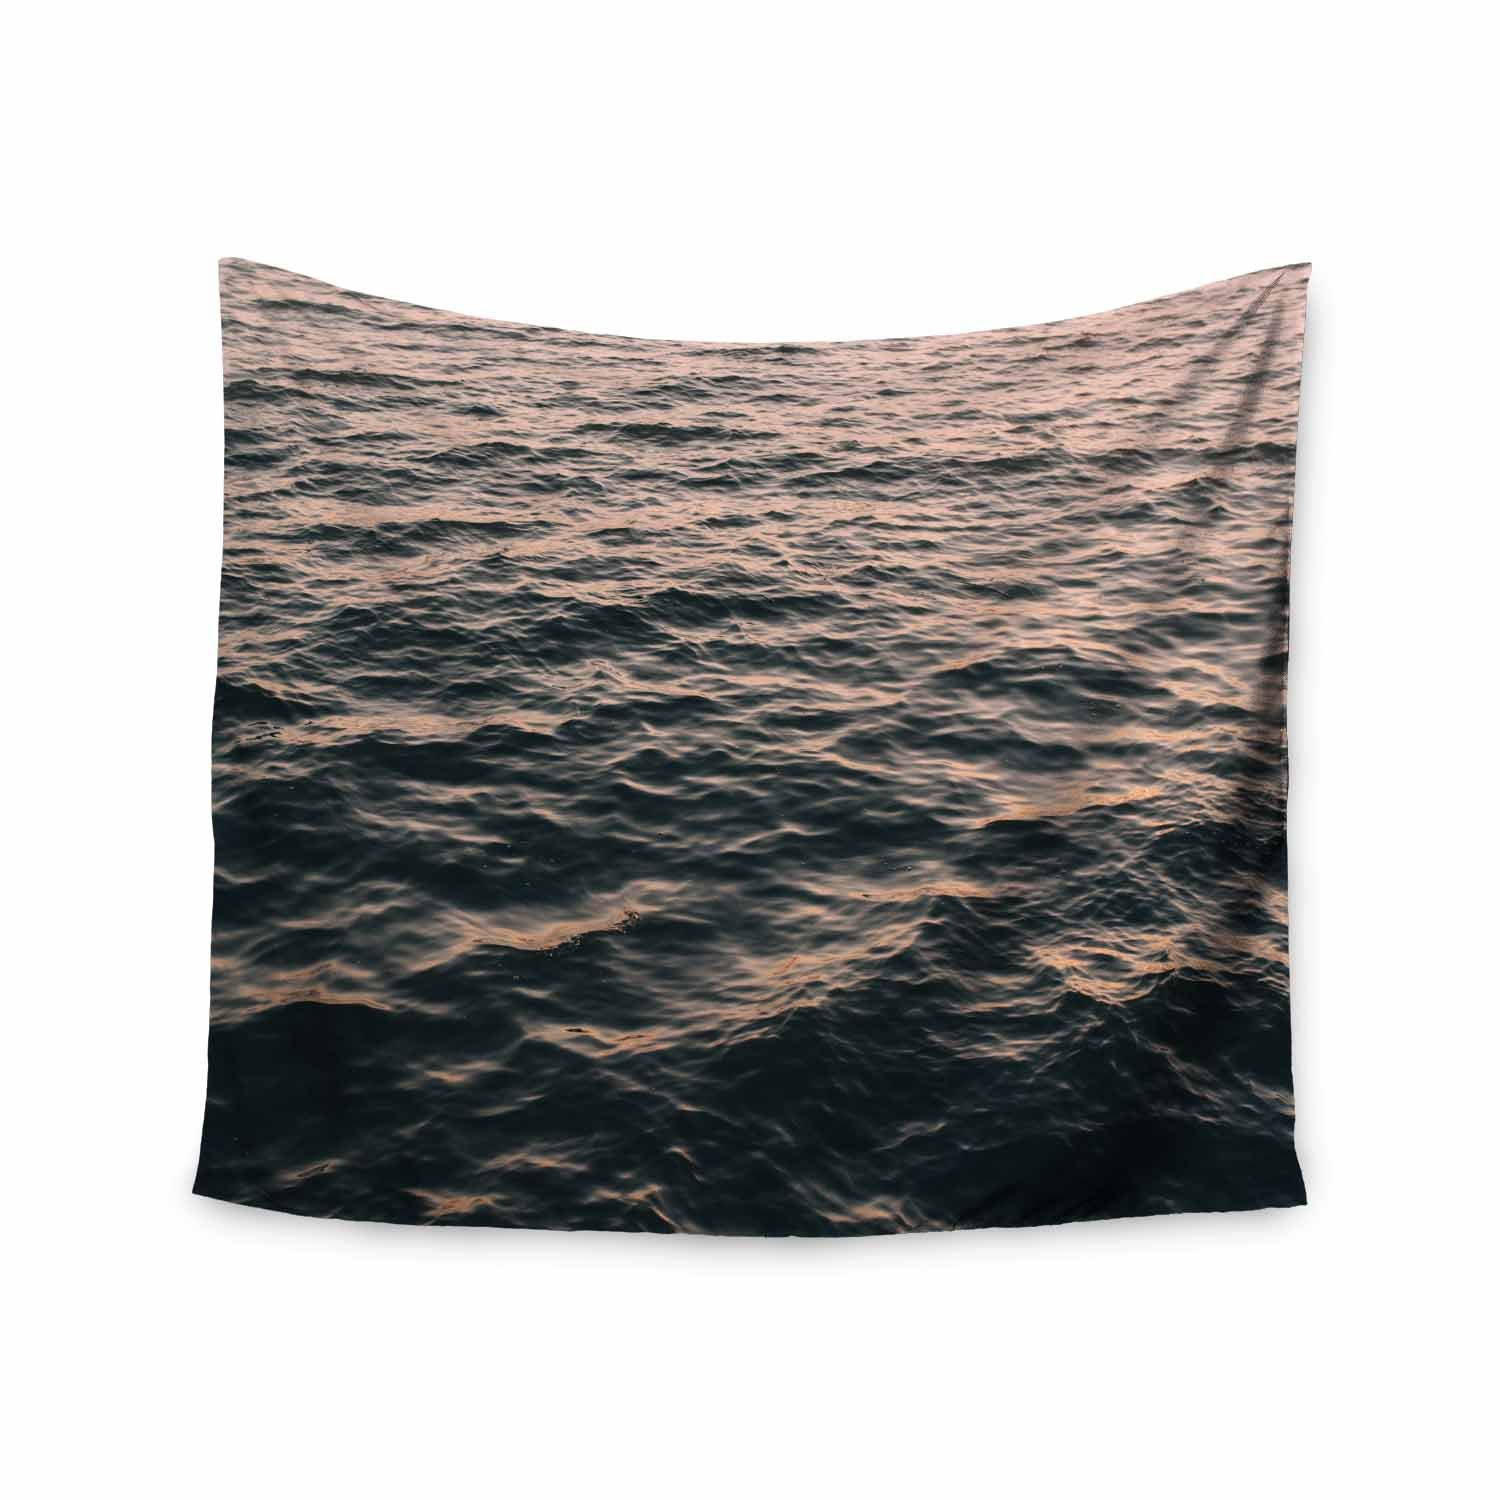 Kess InHouse Chelsea Victoria Ocean Swept Pink Blue Coastal Nature Photography Wall Tapestry